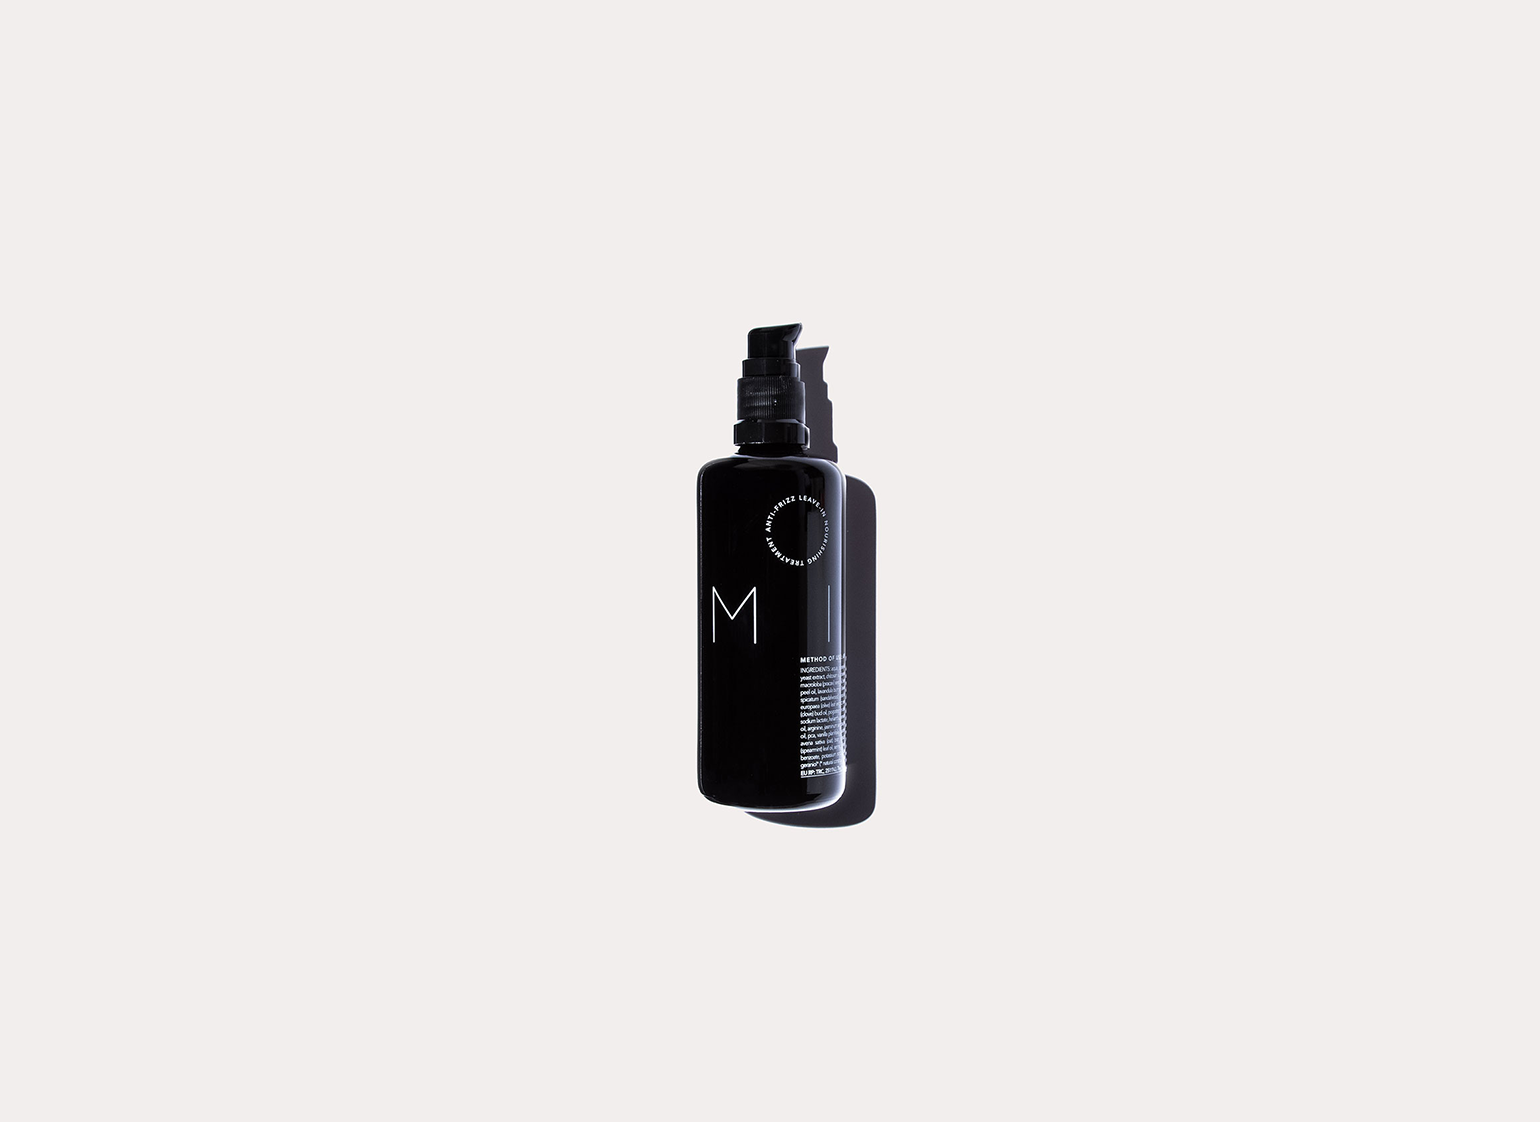 Milk Anti-Frizz Leave-in Treatment black bottle lays against an off white background